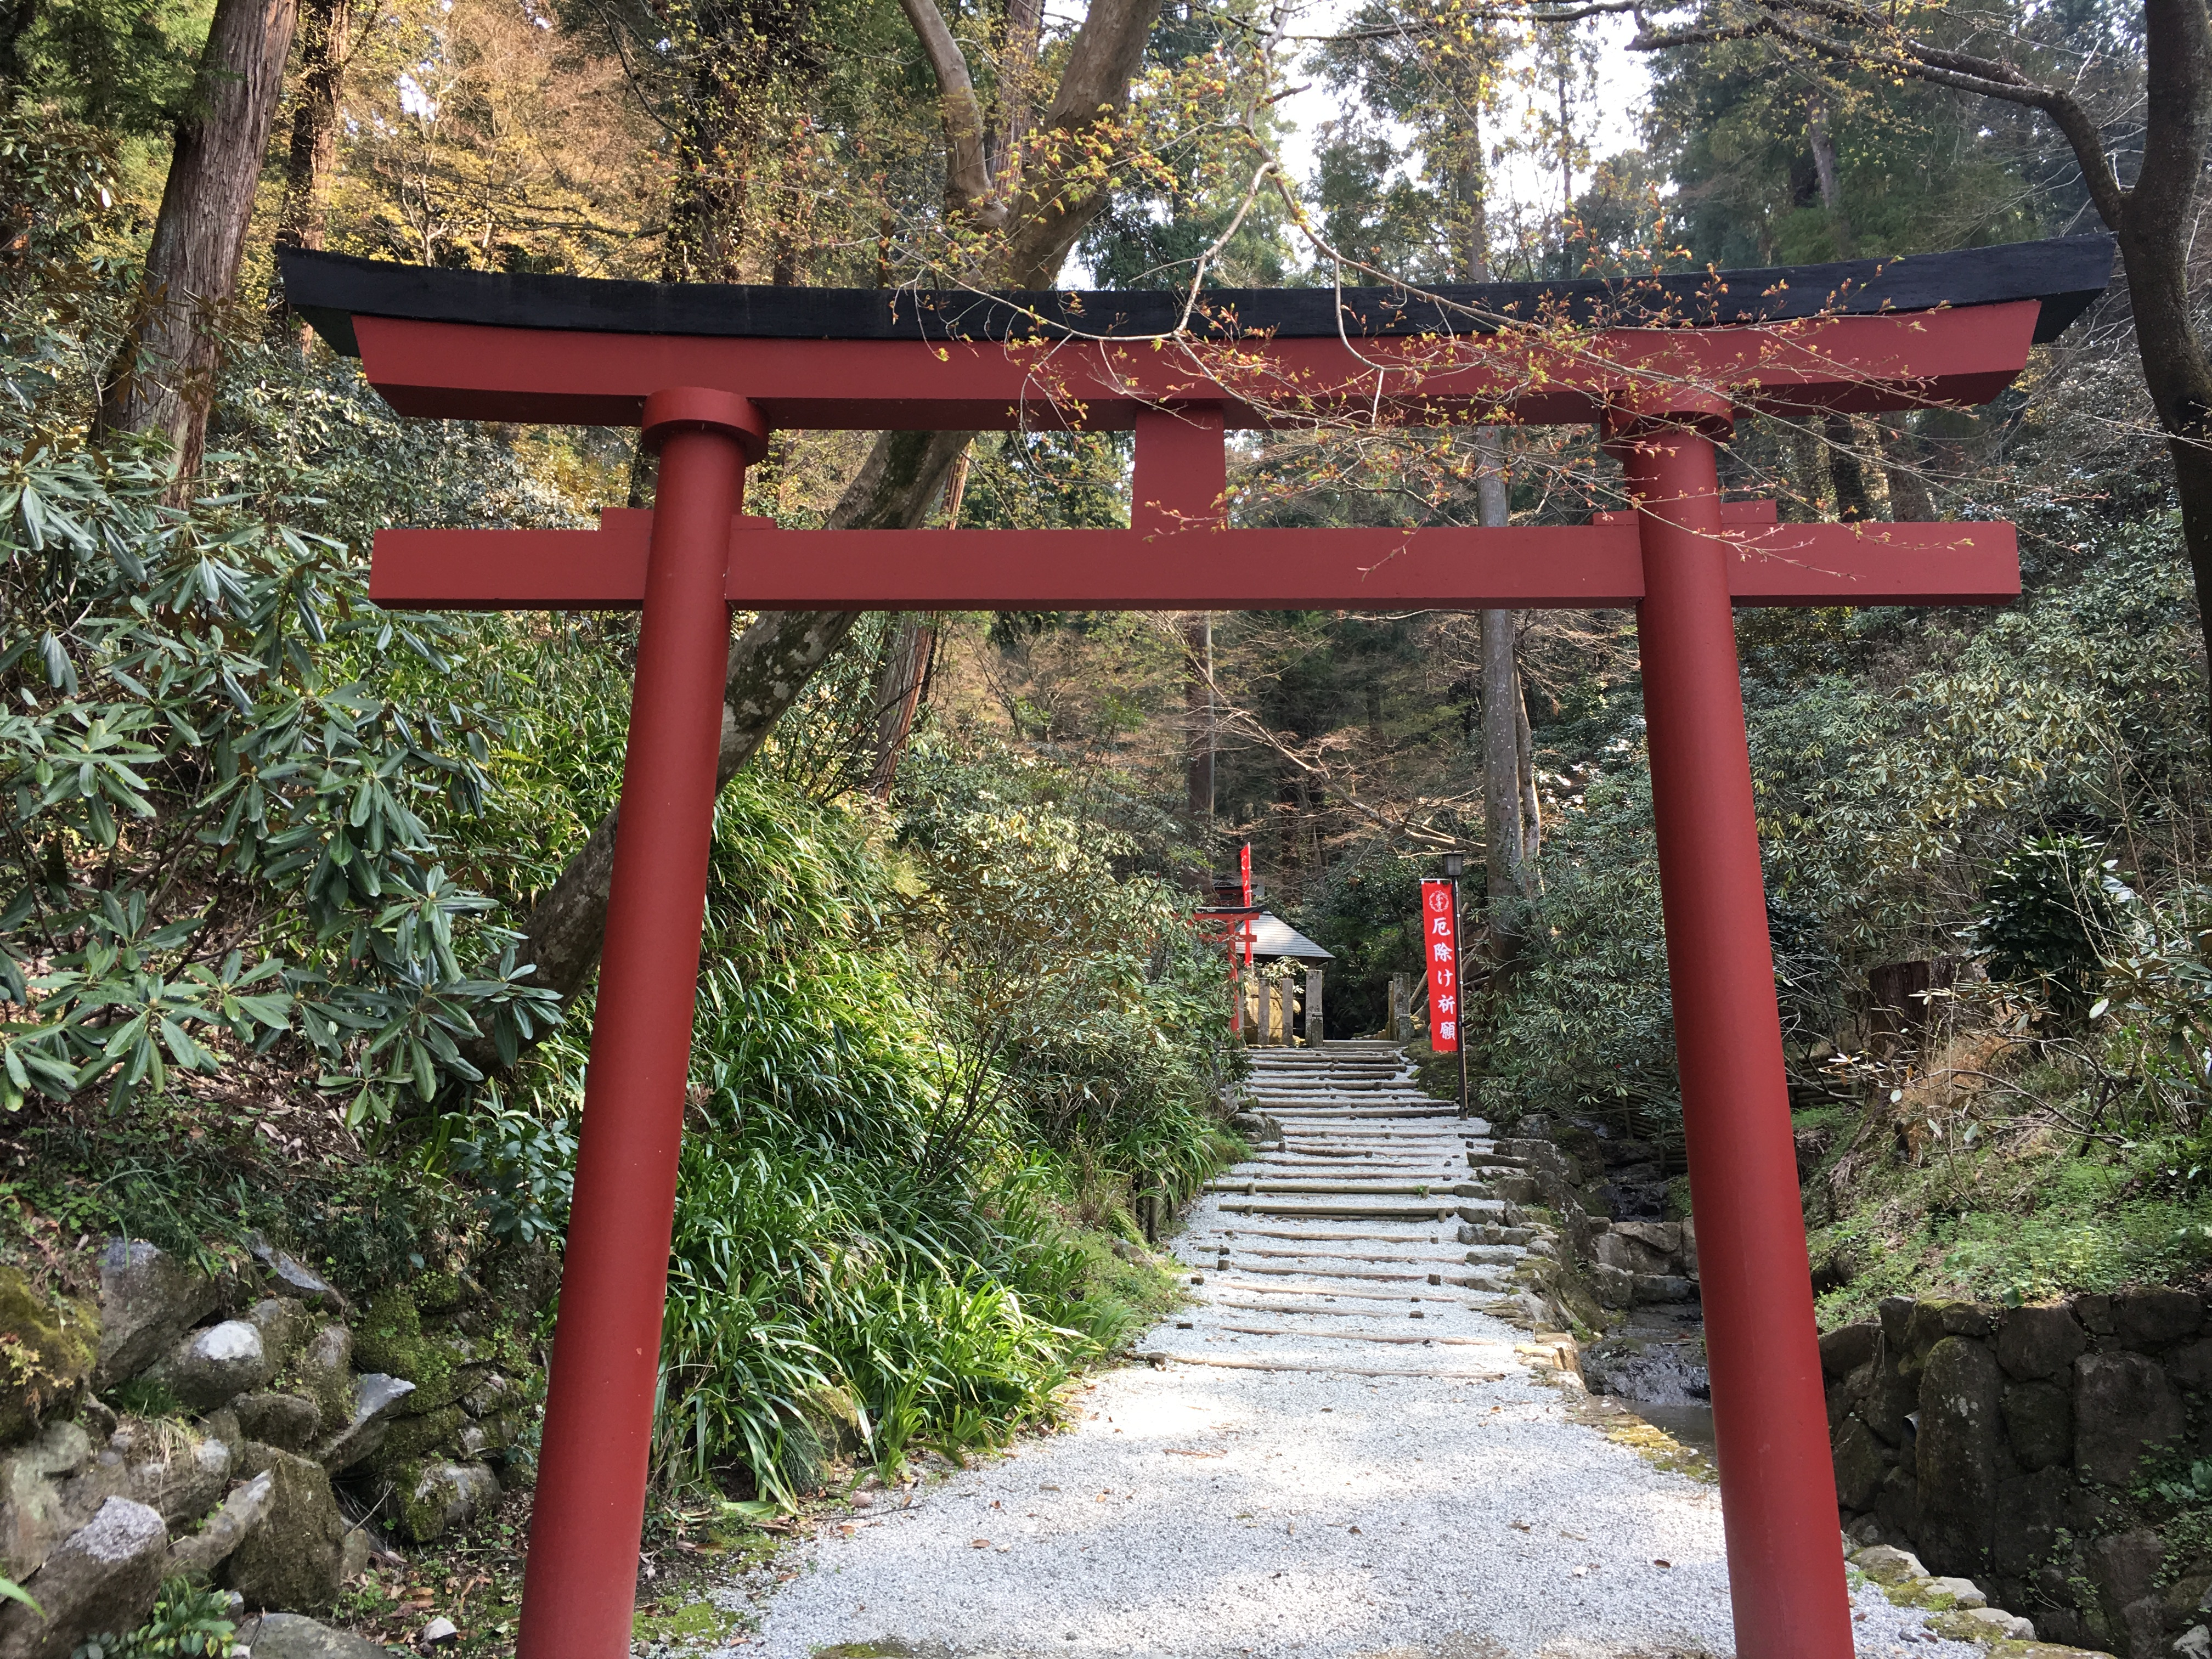 red and black Japanese torii before a gravel path lined with rhodedendrons